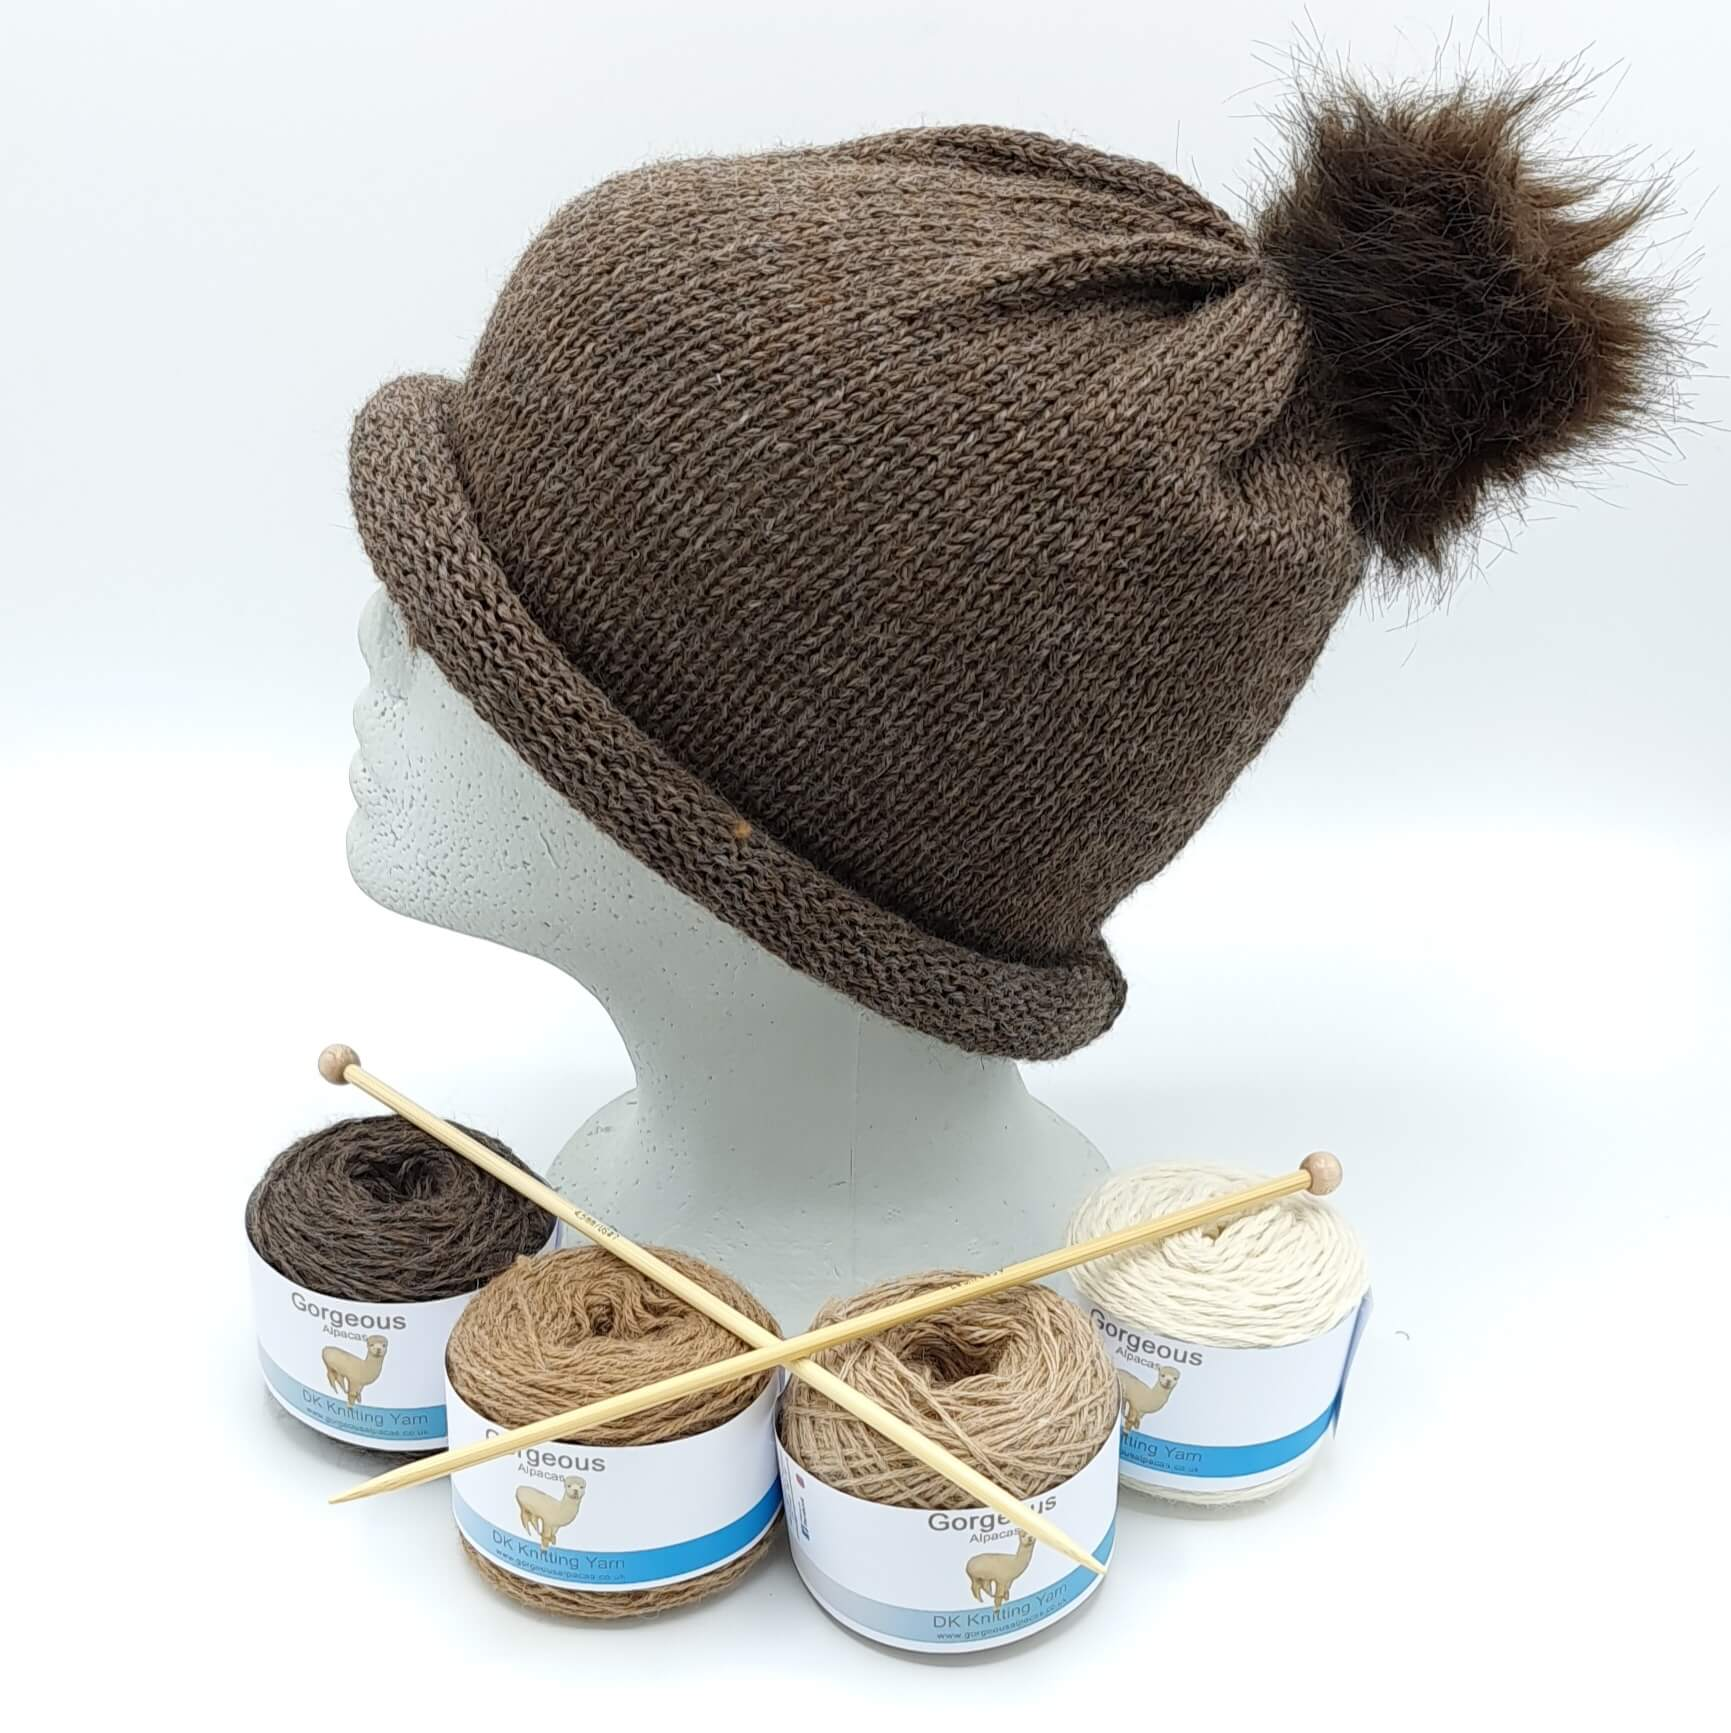 Knit Kit - Roll-up Longdrop Hat + - Gorgeous Alpacas